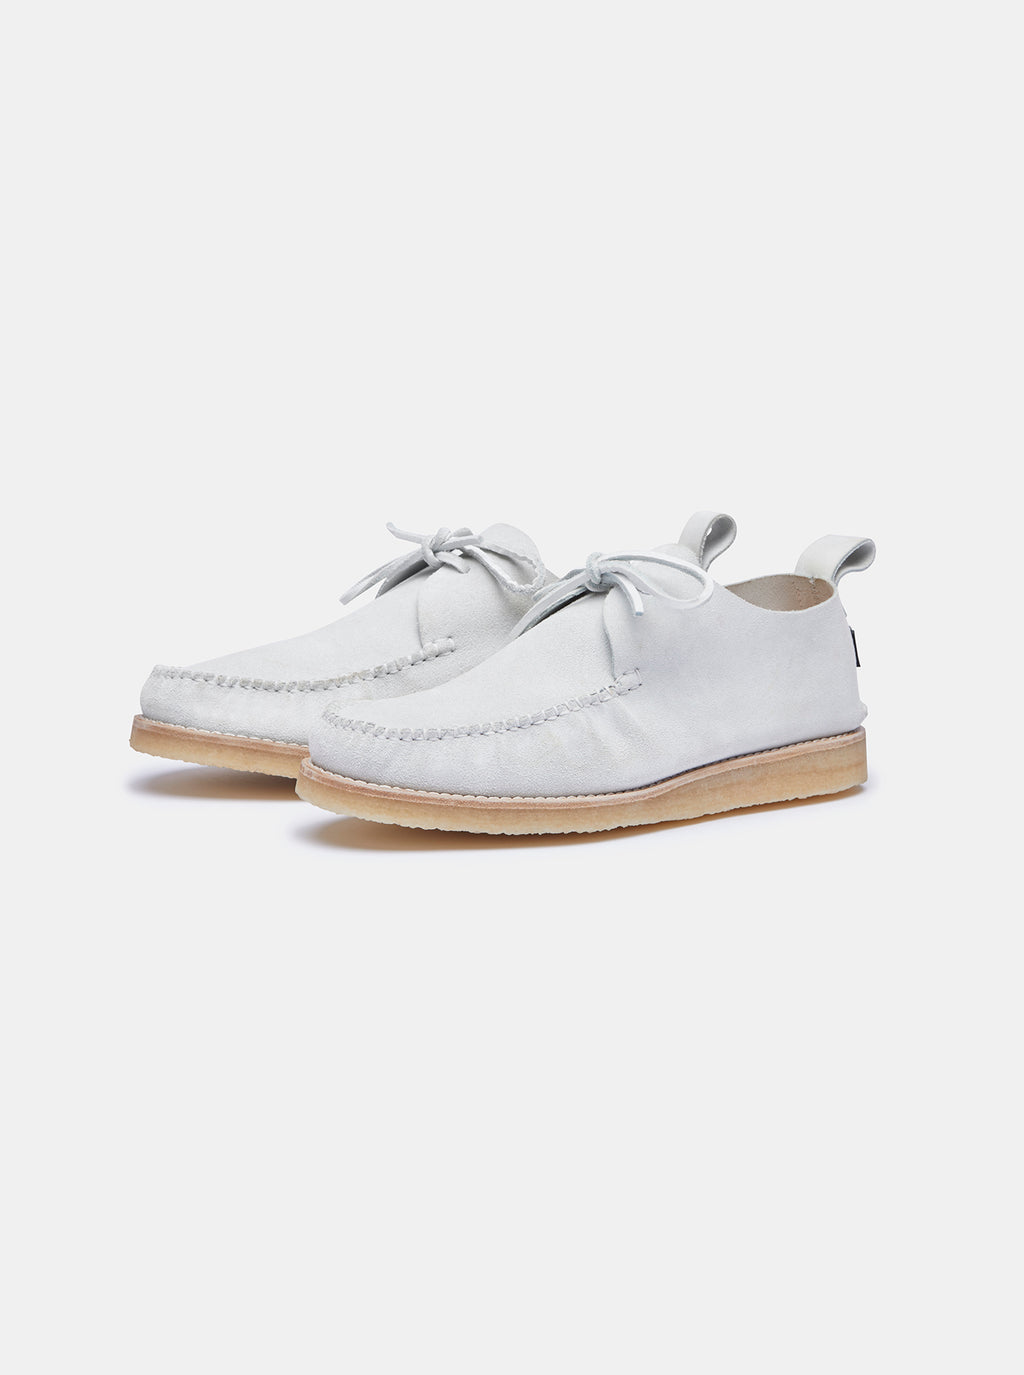 Yogi for Albam Lawson Suede Moccasin White